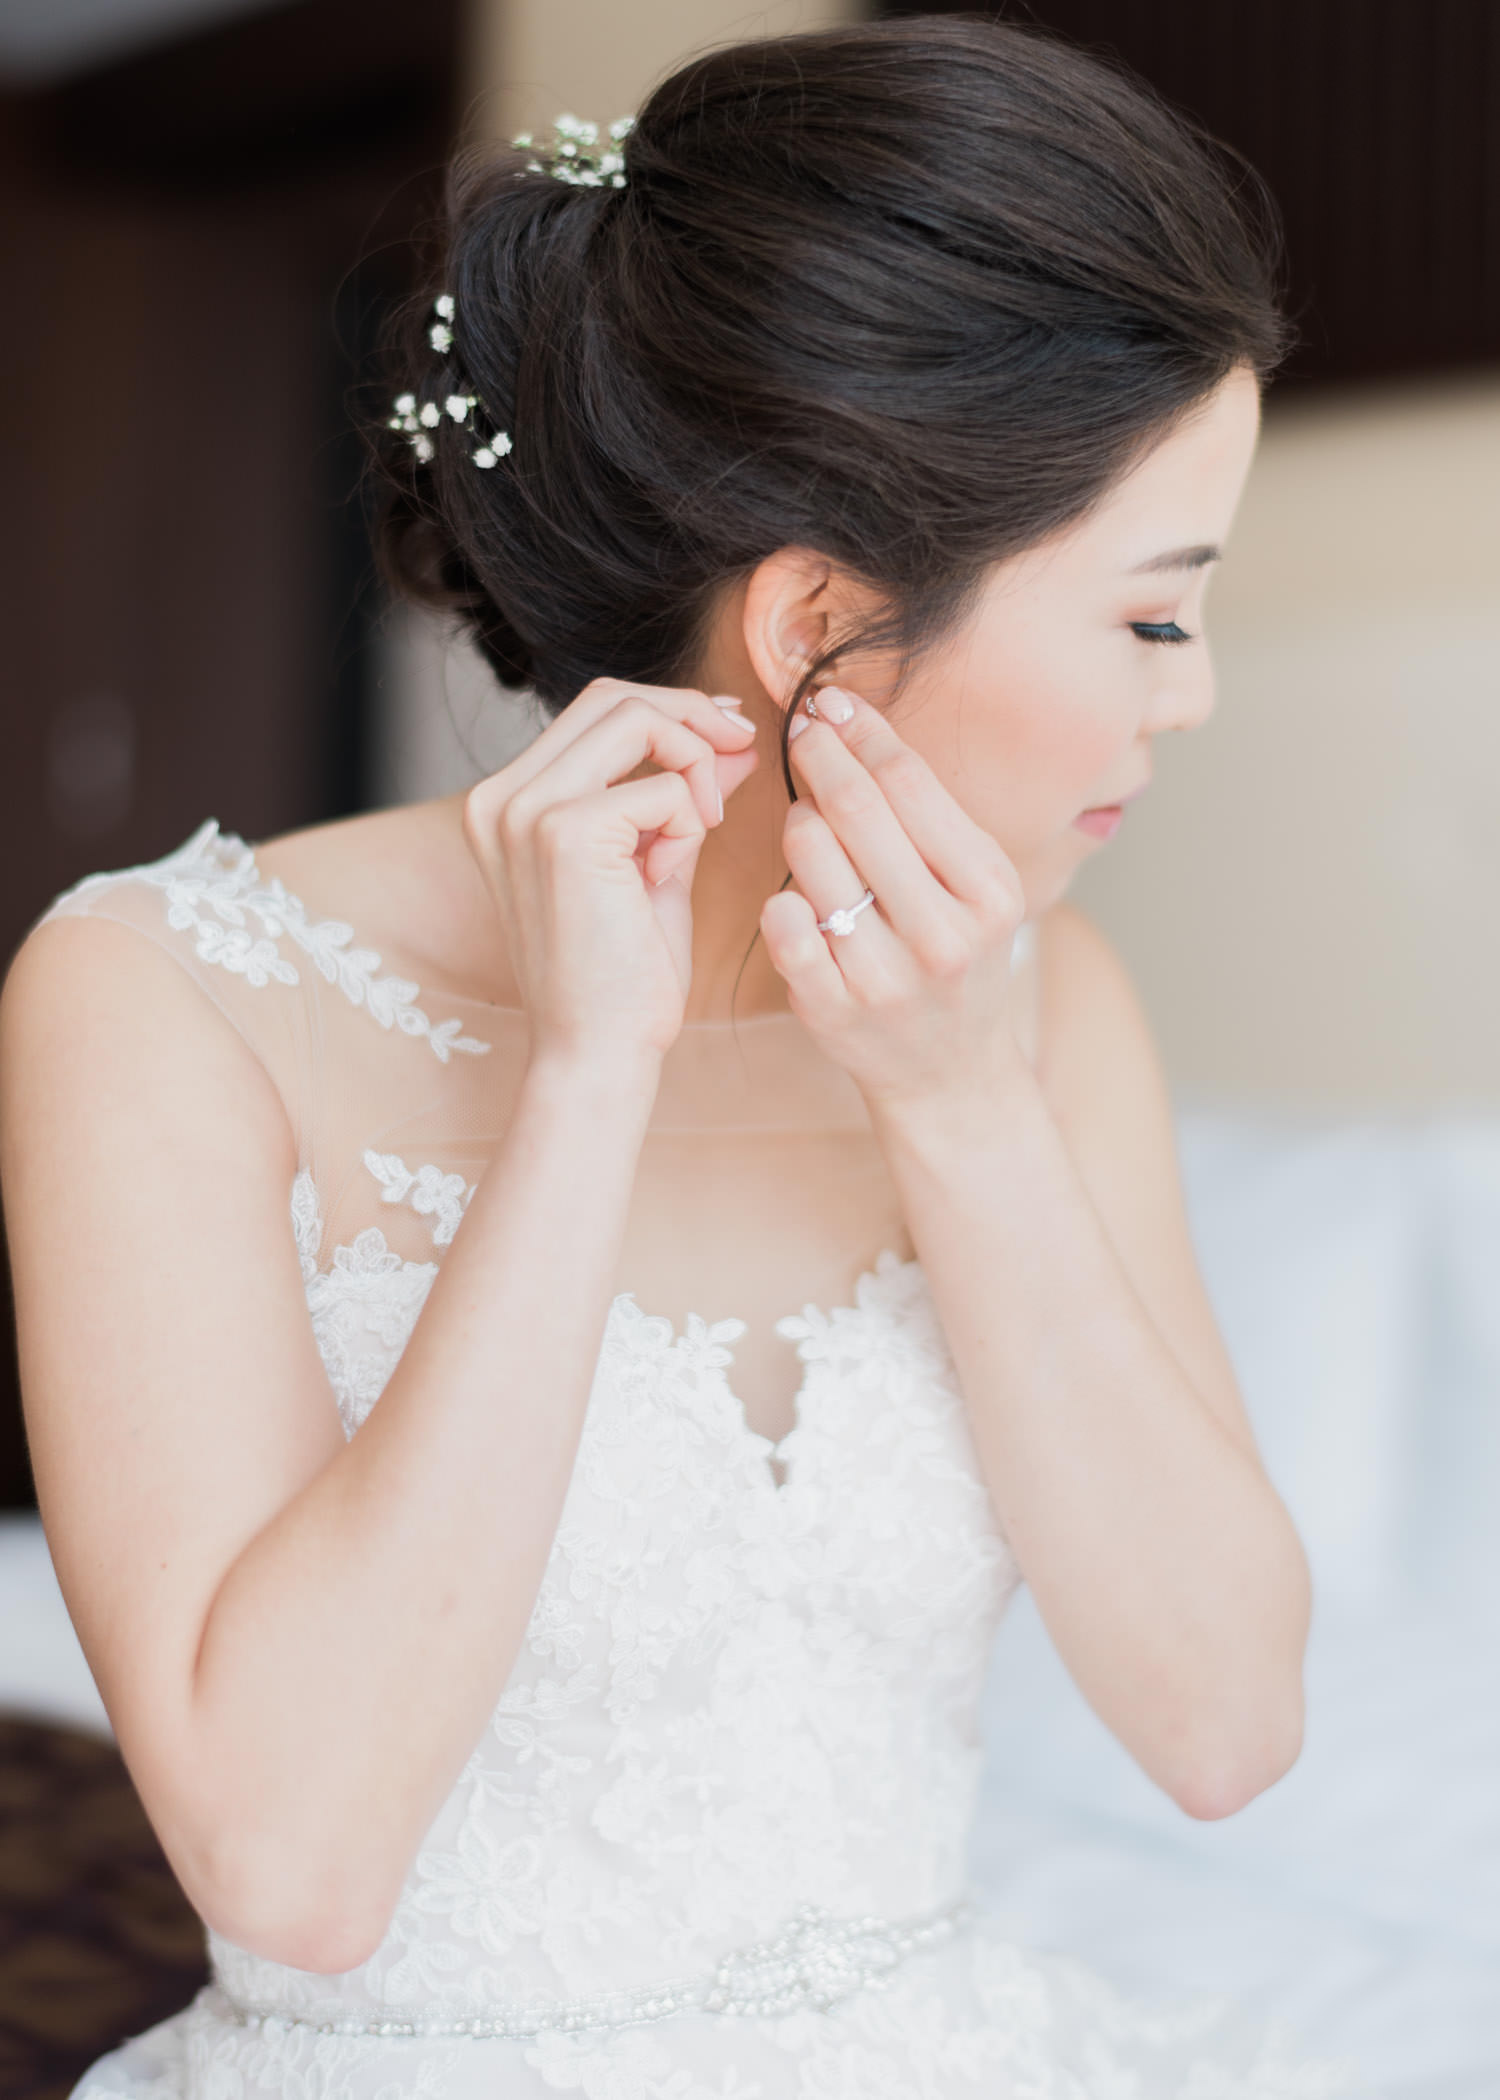 Bride putting on her earrings at Shangri-La Hotel in Toronto